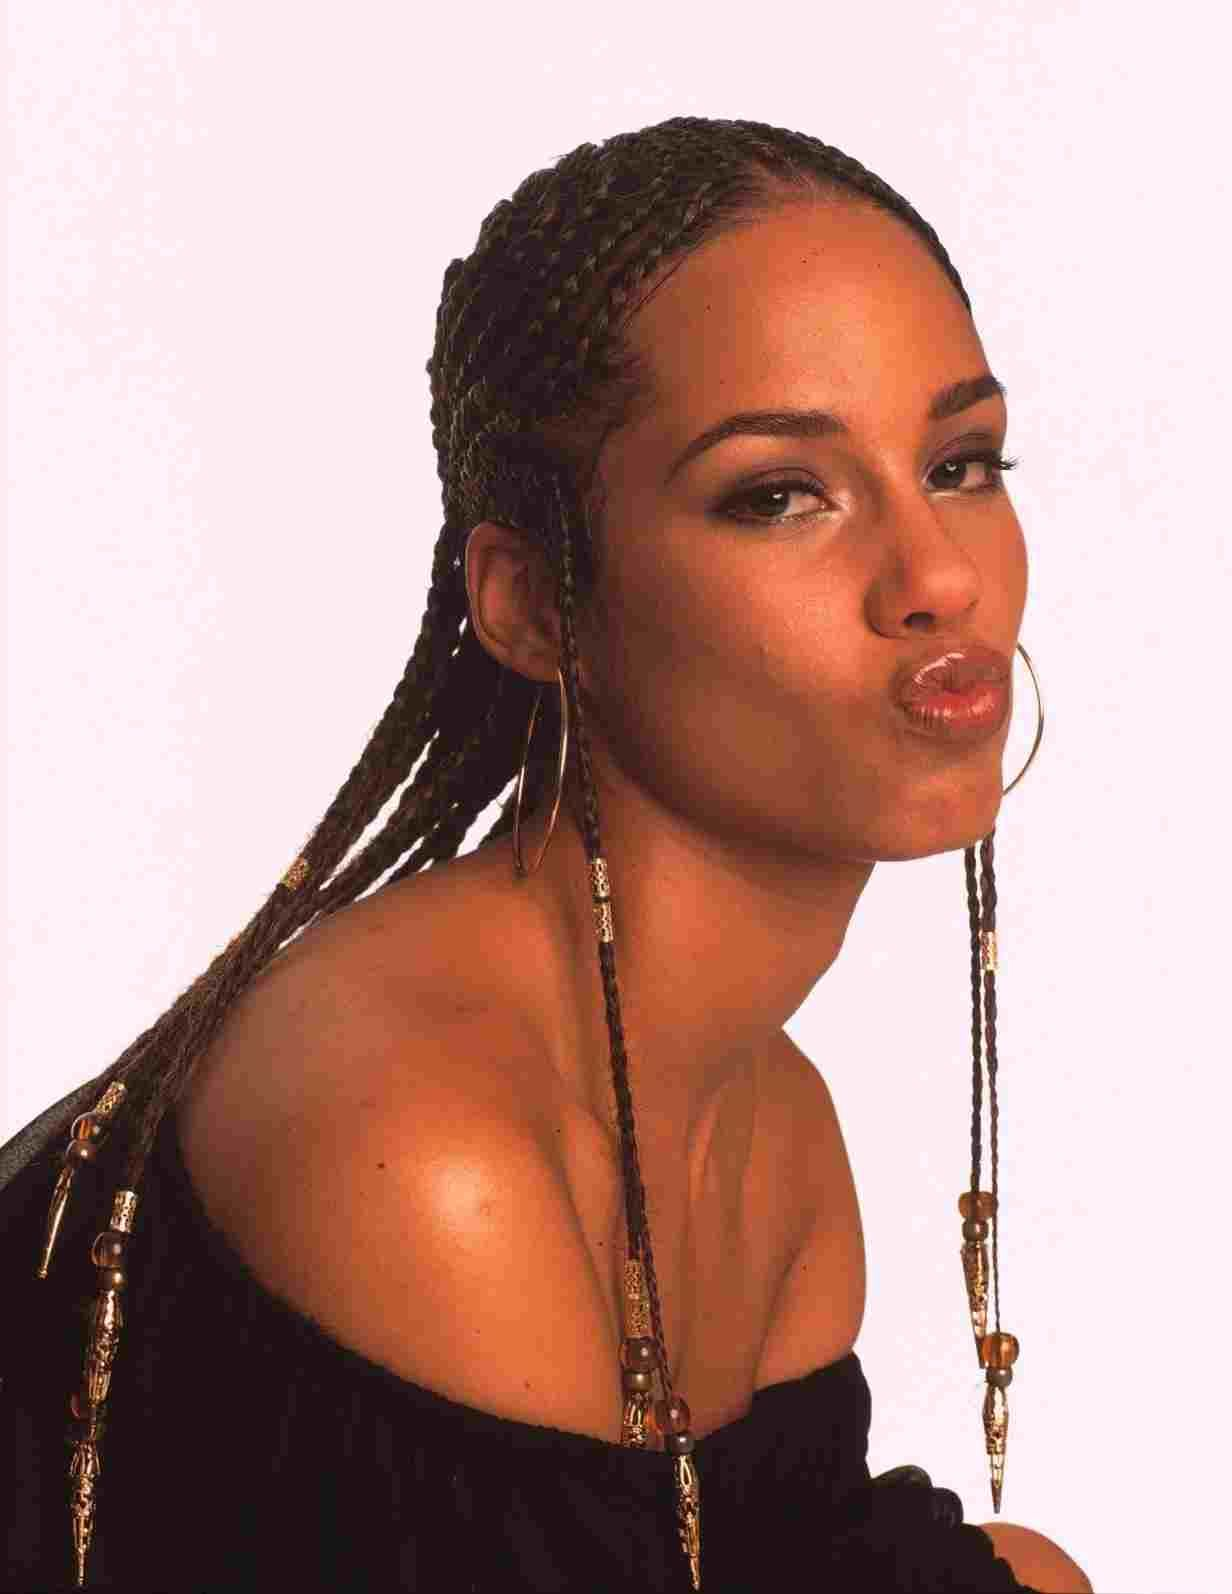 90s Hairstyle Hip Hop Alicia Keys Hairstyles Alicia Keys Braids Cornrows Braids For Black Women